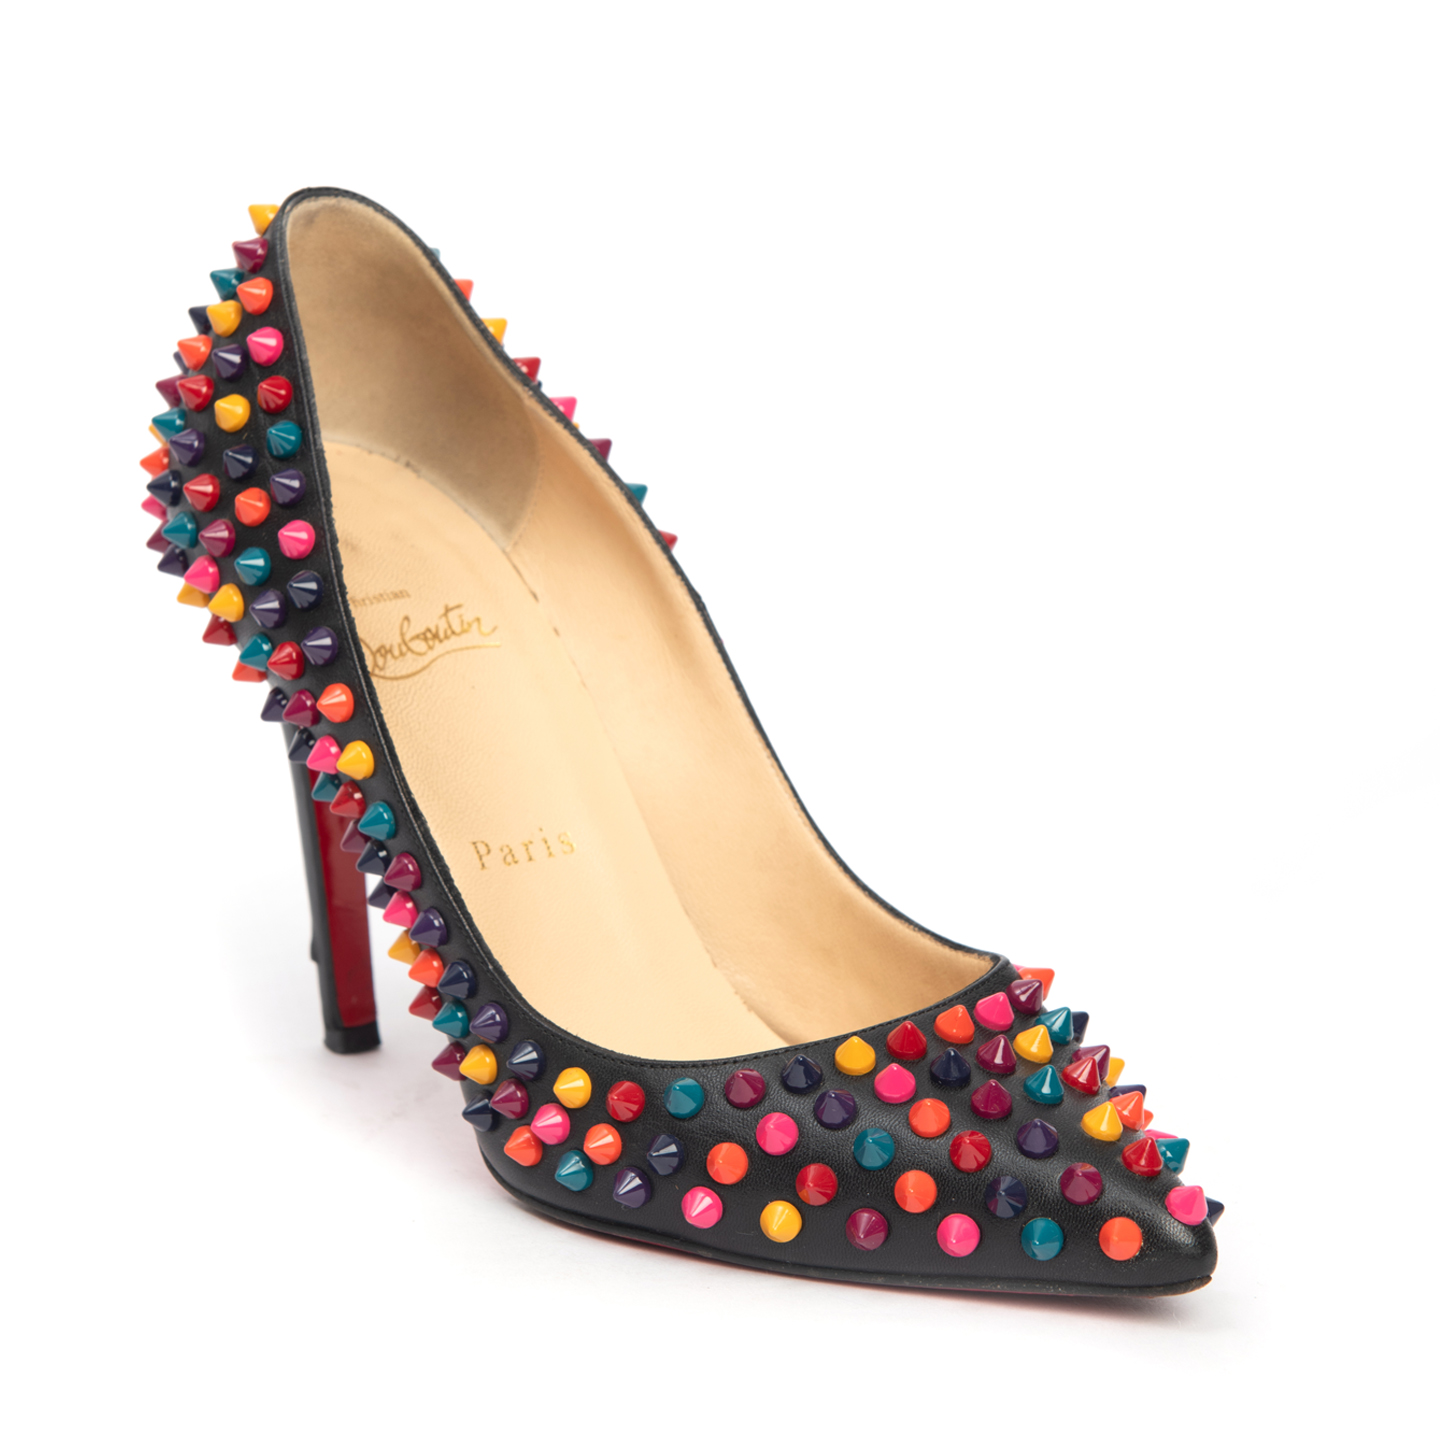 Christian Louboutin Black Leather Pigalle Mulitcolor Spikes 100mm Pumps 02